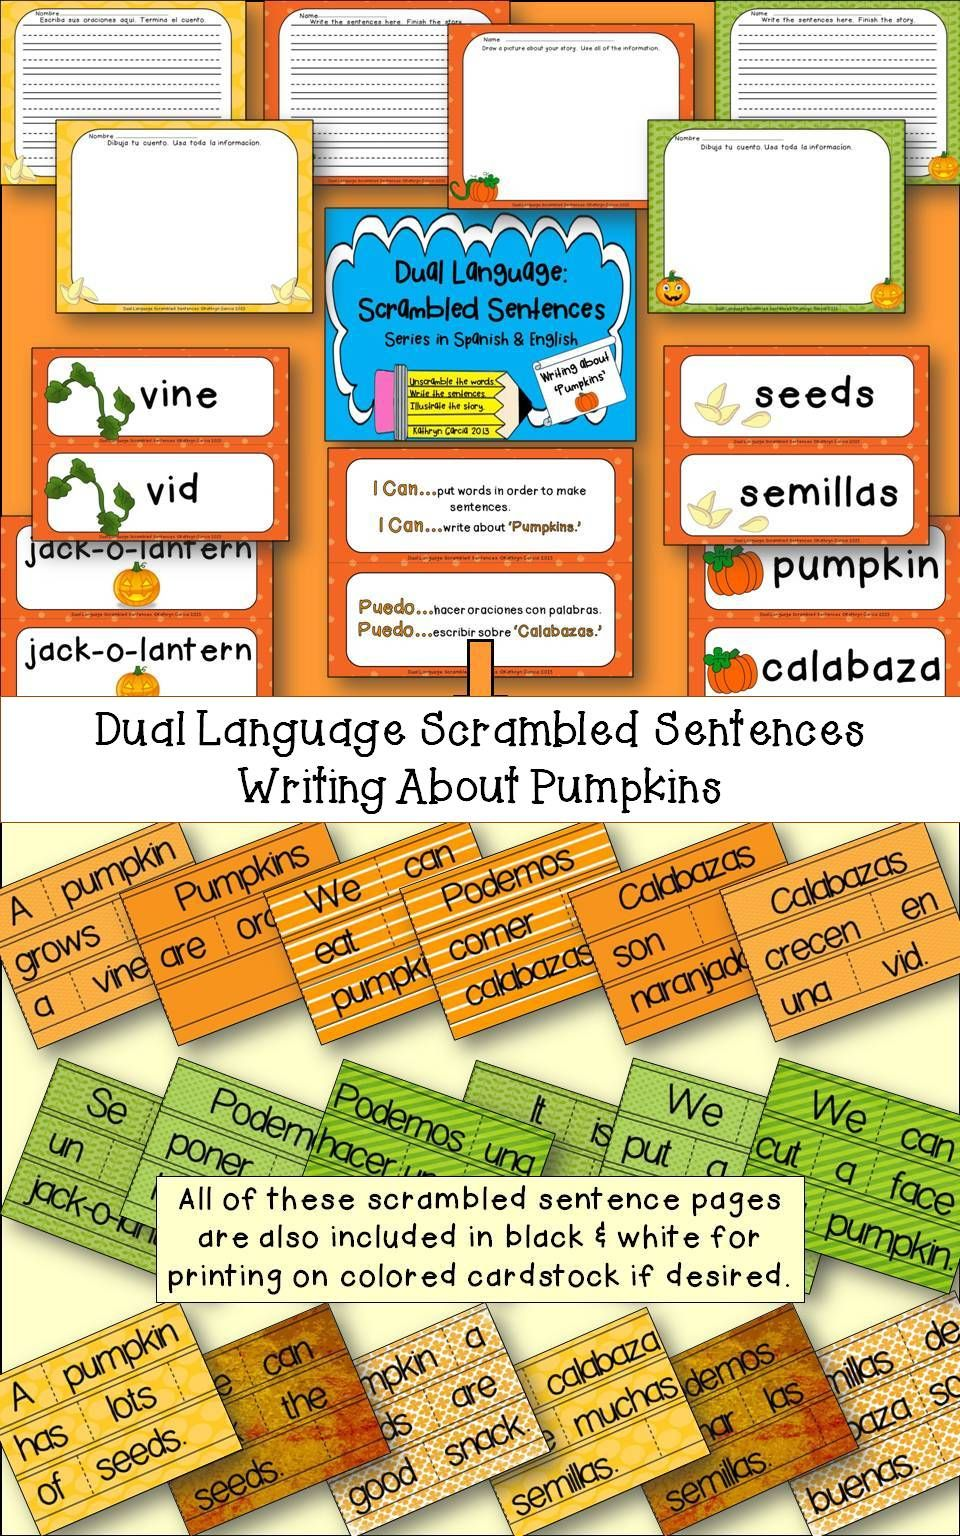 Spanish scrambled sentences for dual language bilingual calabazas pumpkins